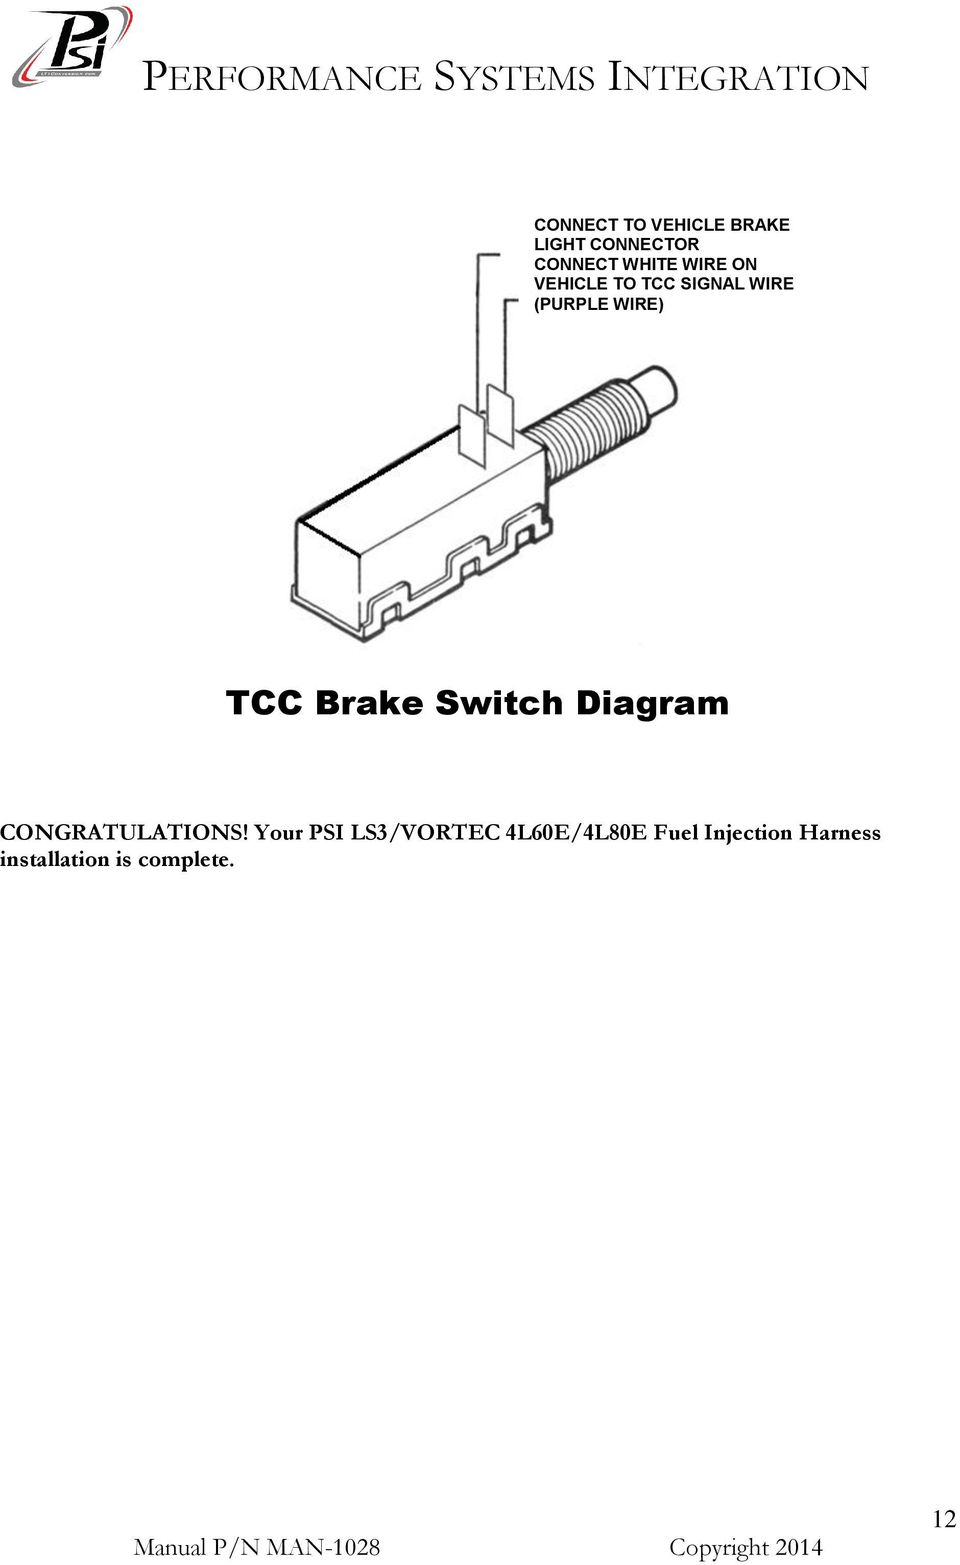 hight resolution of brake switch diagram congratulations